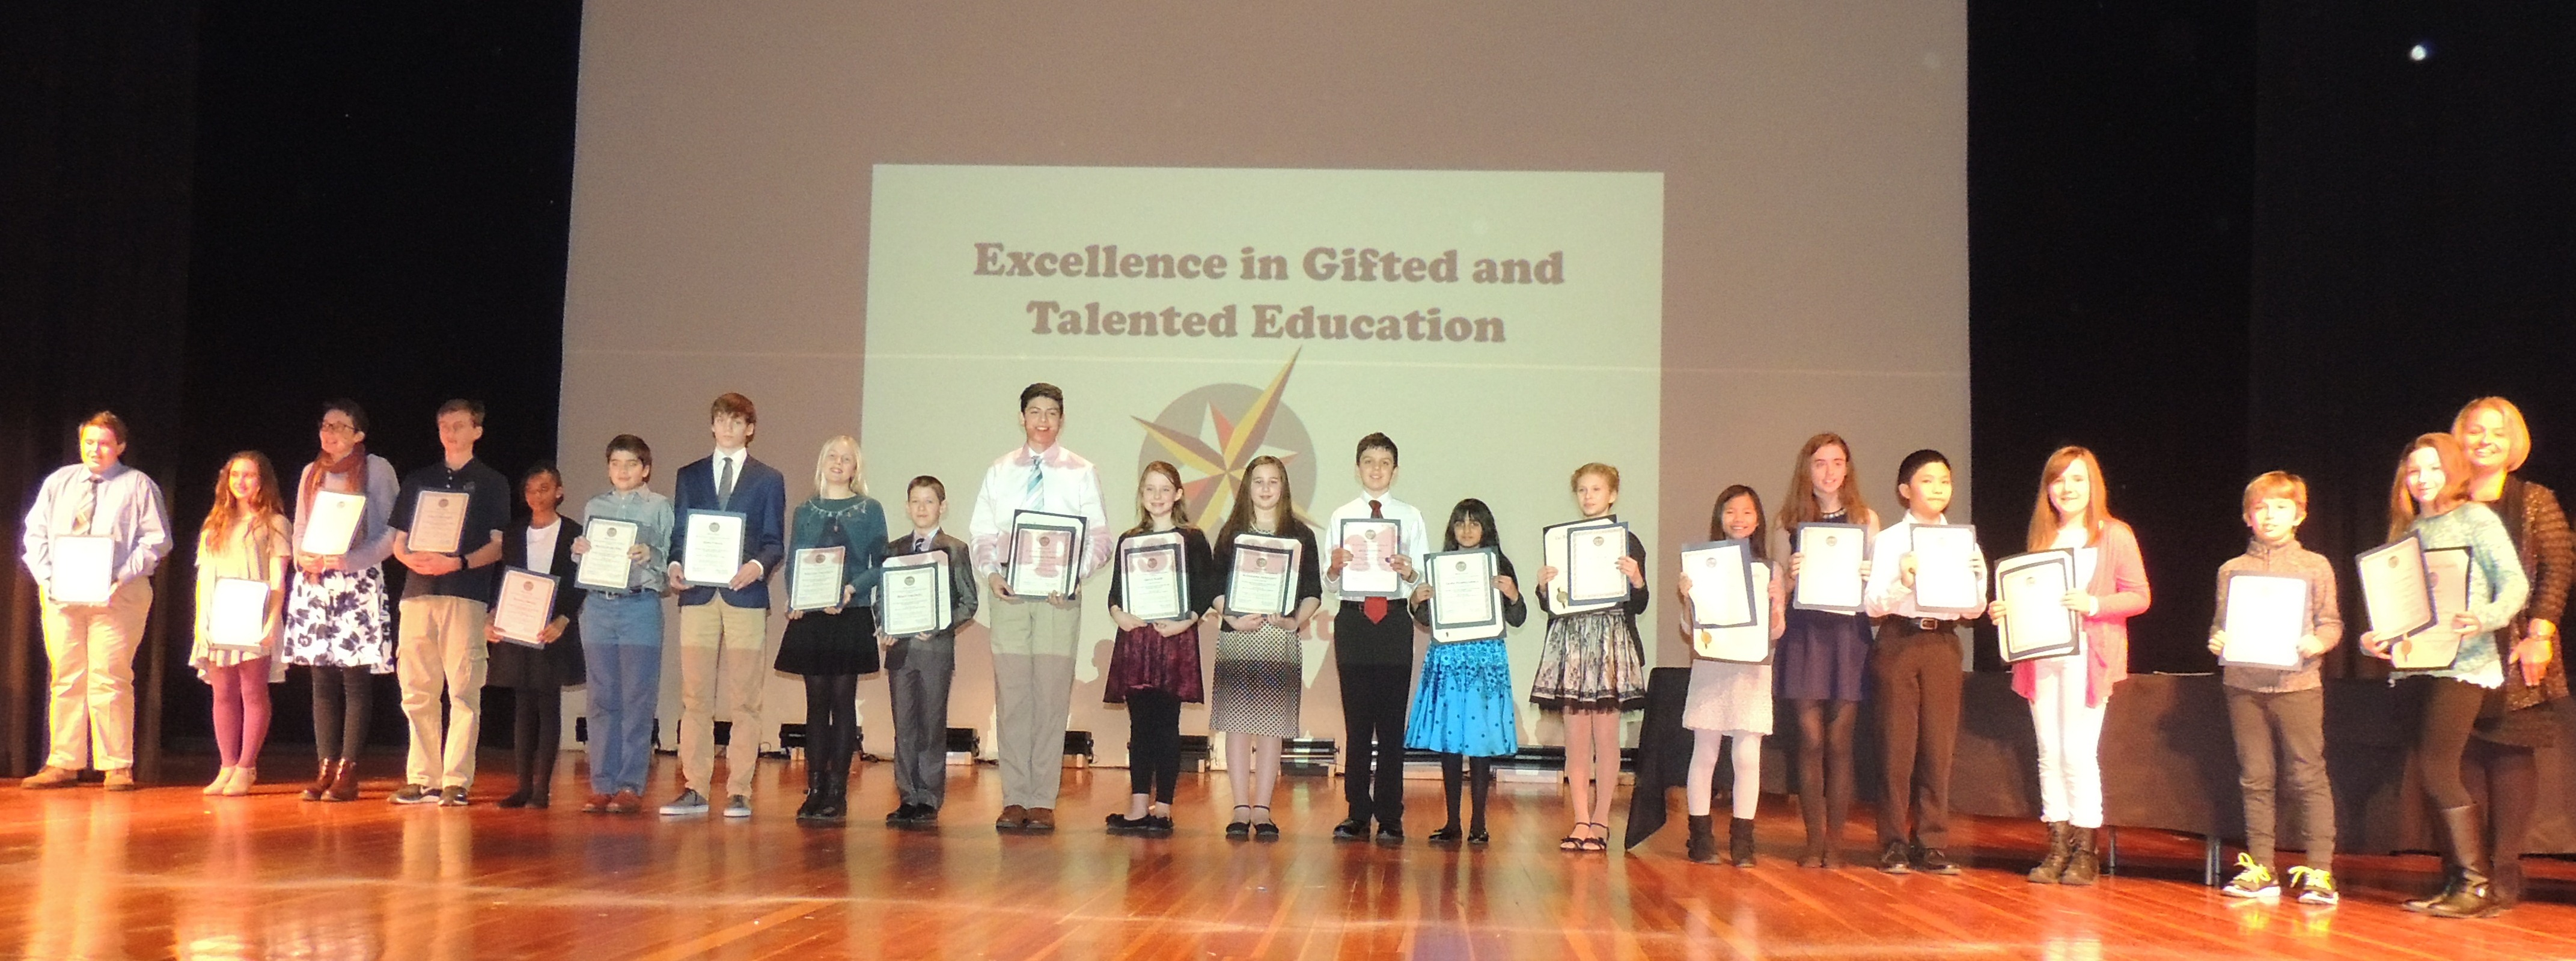 Gifted talented 2017 maryland gt awards reception highlights 1betcityfo Image collections